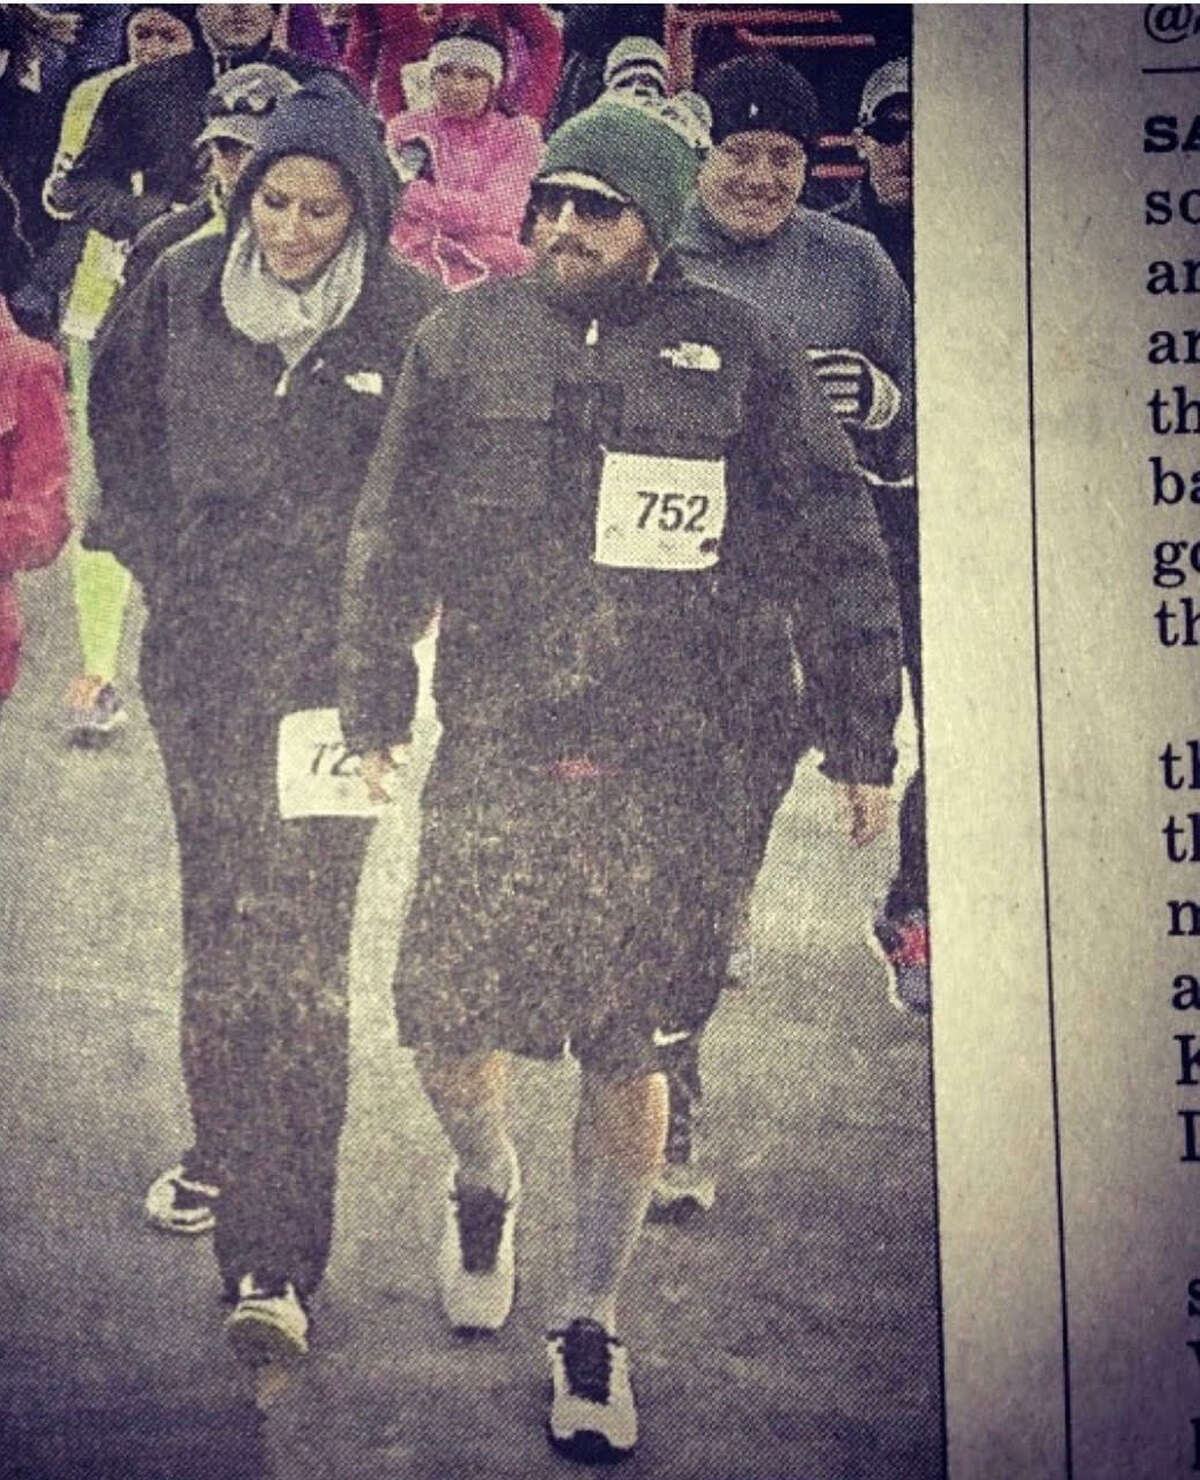 2. My husband, Nick and I made the front page of the sports section after walking (not running!) the Turkey Trot (there were far more deserving participants!).